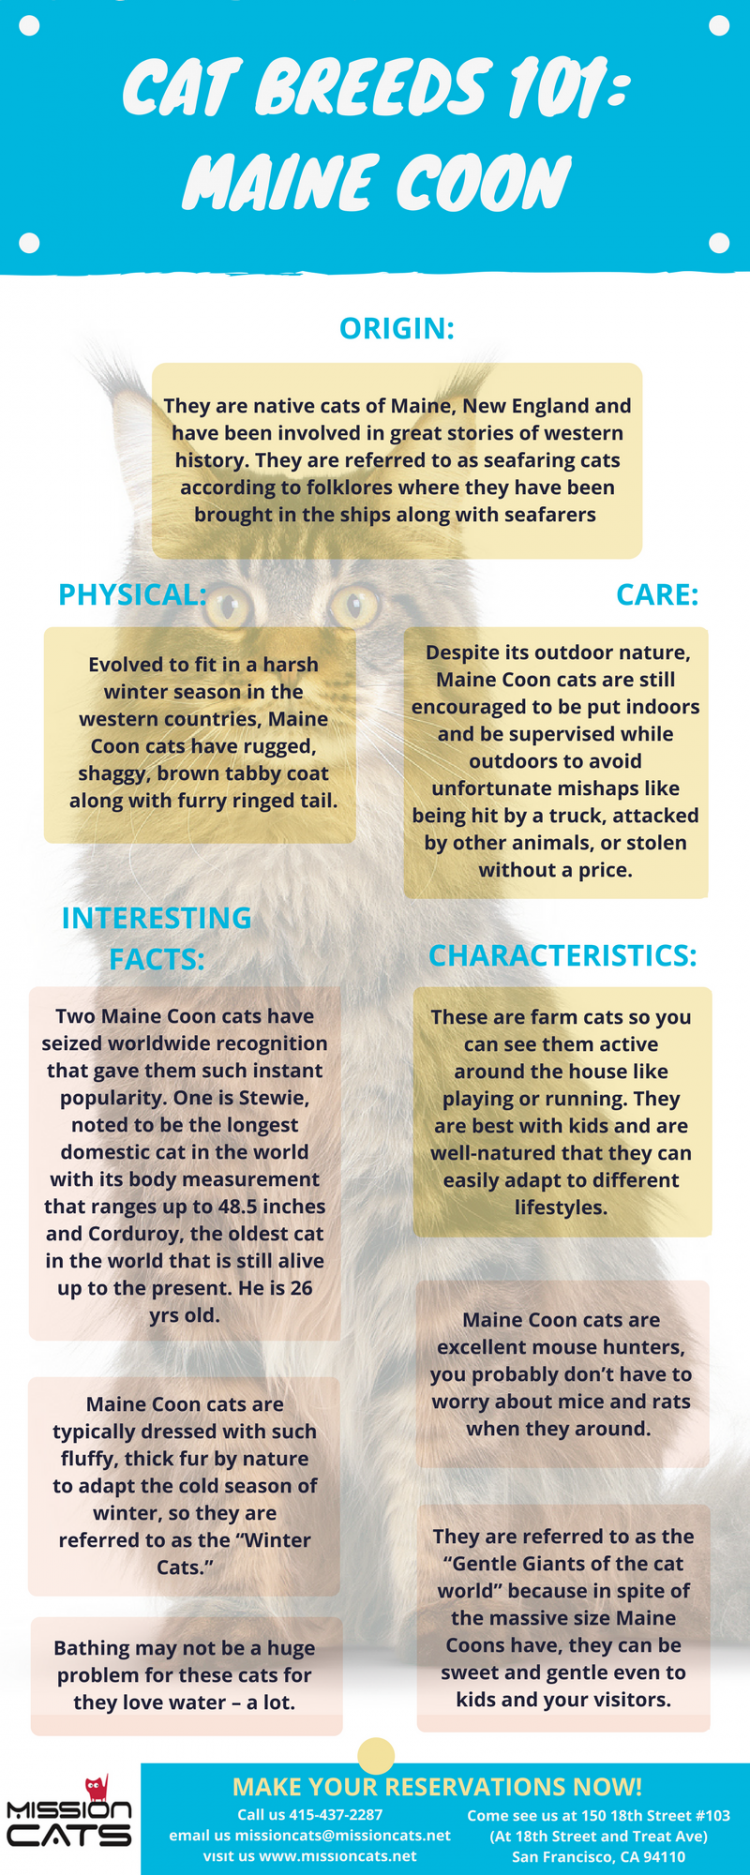 cat breeds 101 maine coon